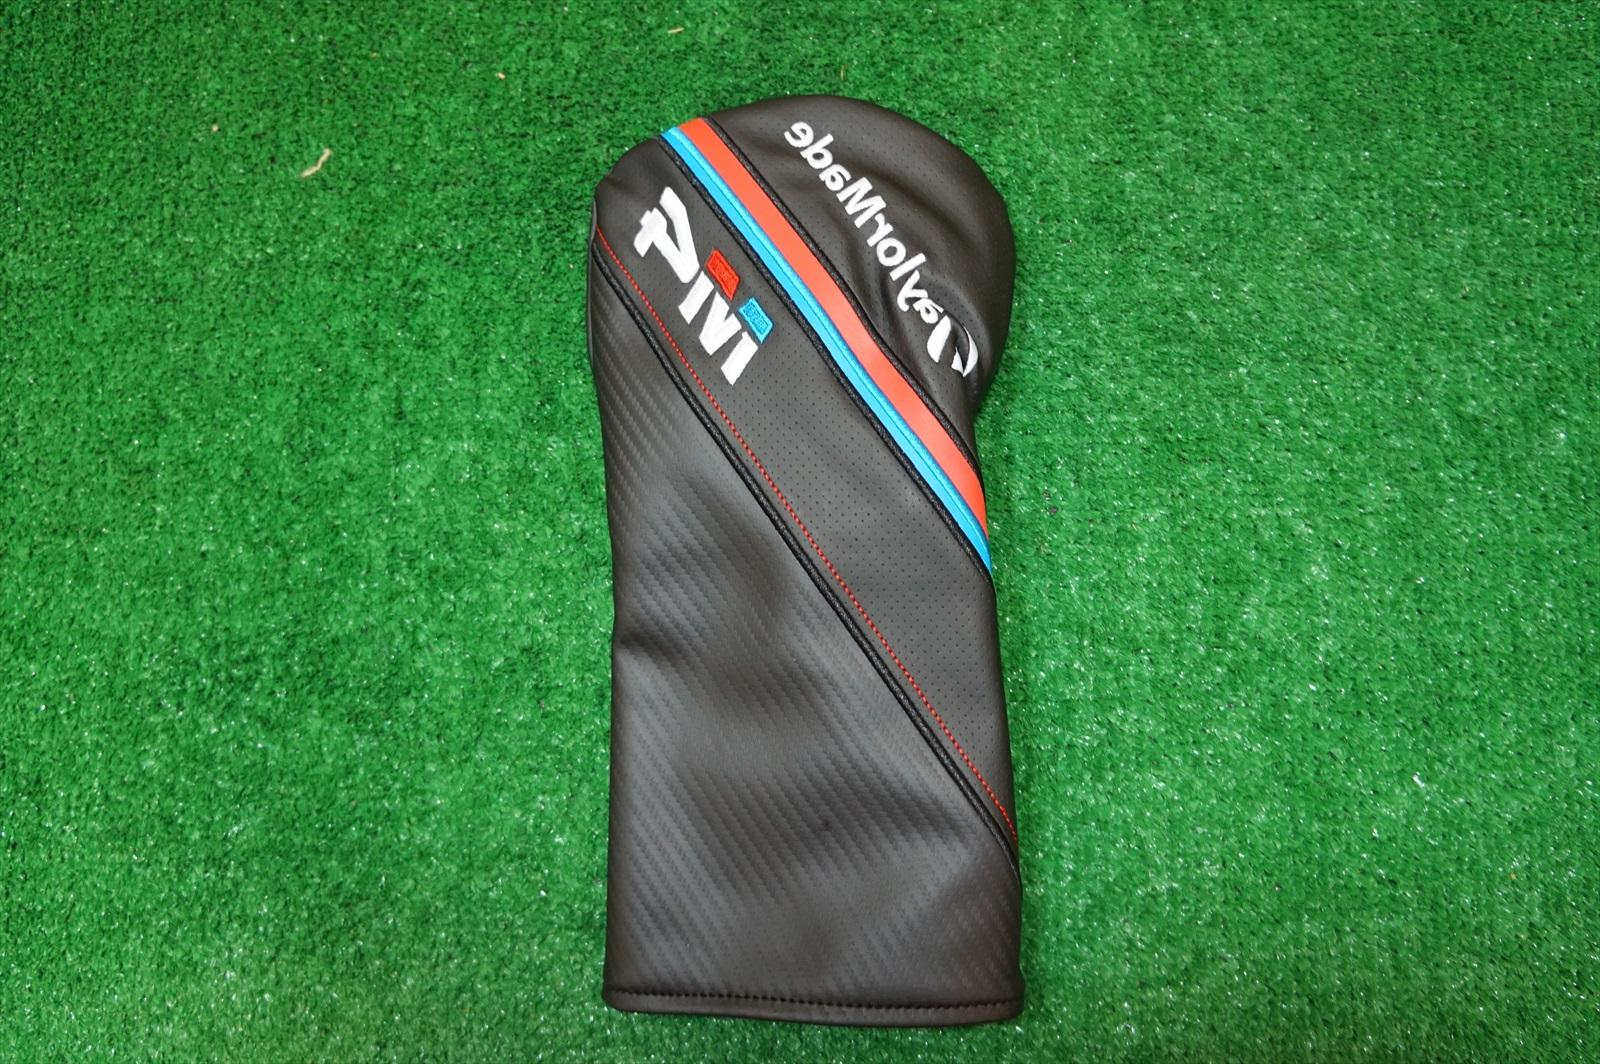 new golf m4 driver headcover with wrench